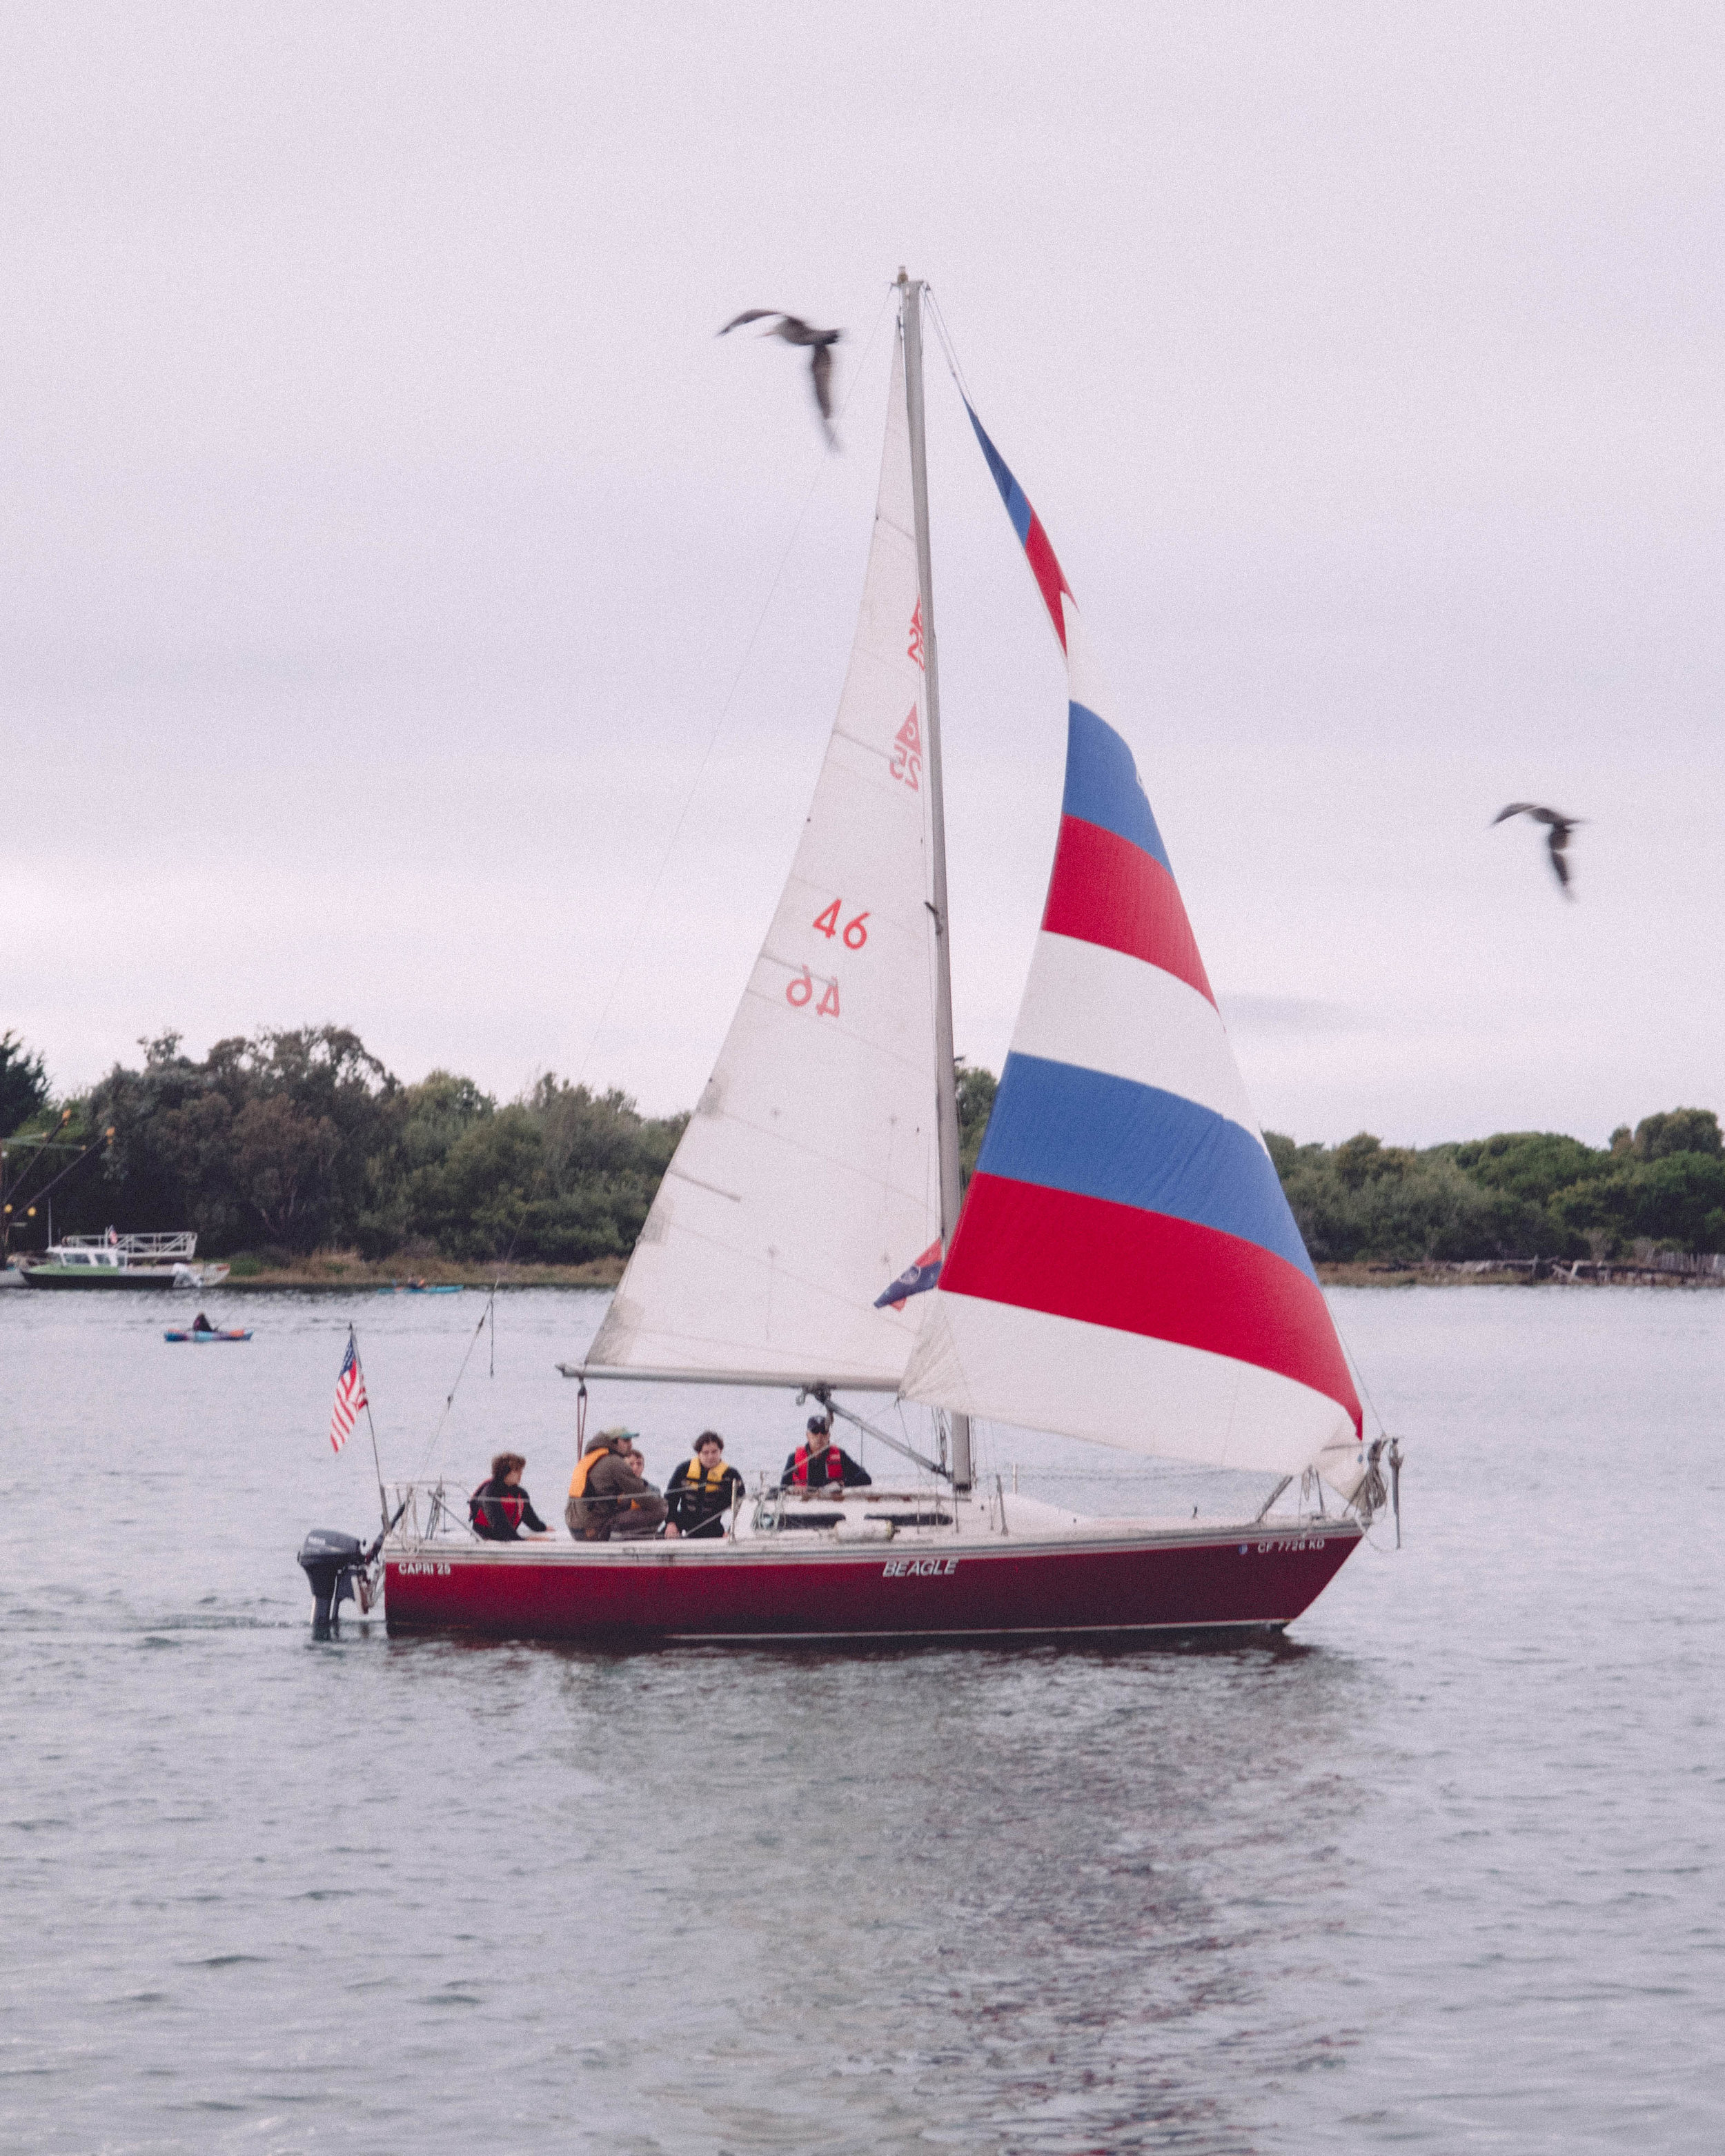 The Humboldt Yacht Club was holding their weekly races during the event